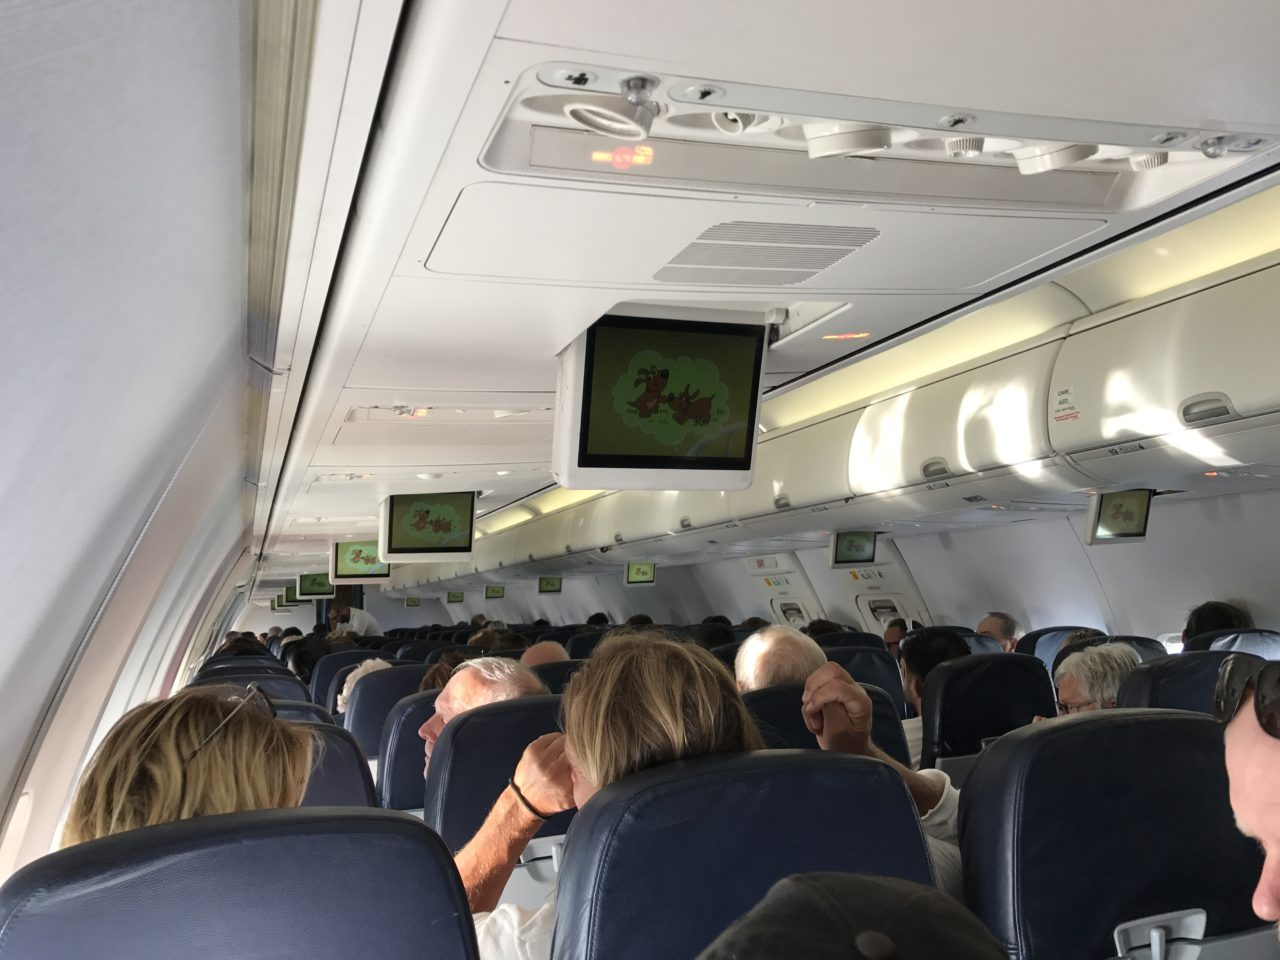 Inside Airplane Cabin With People Sitting Down